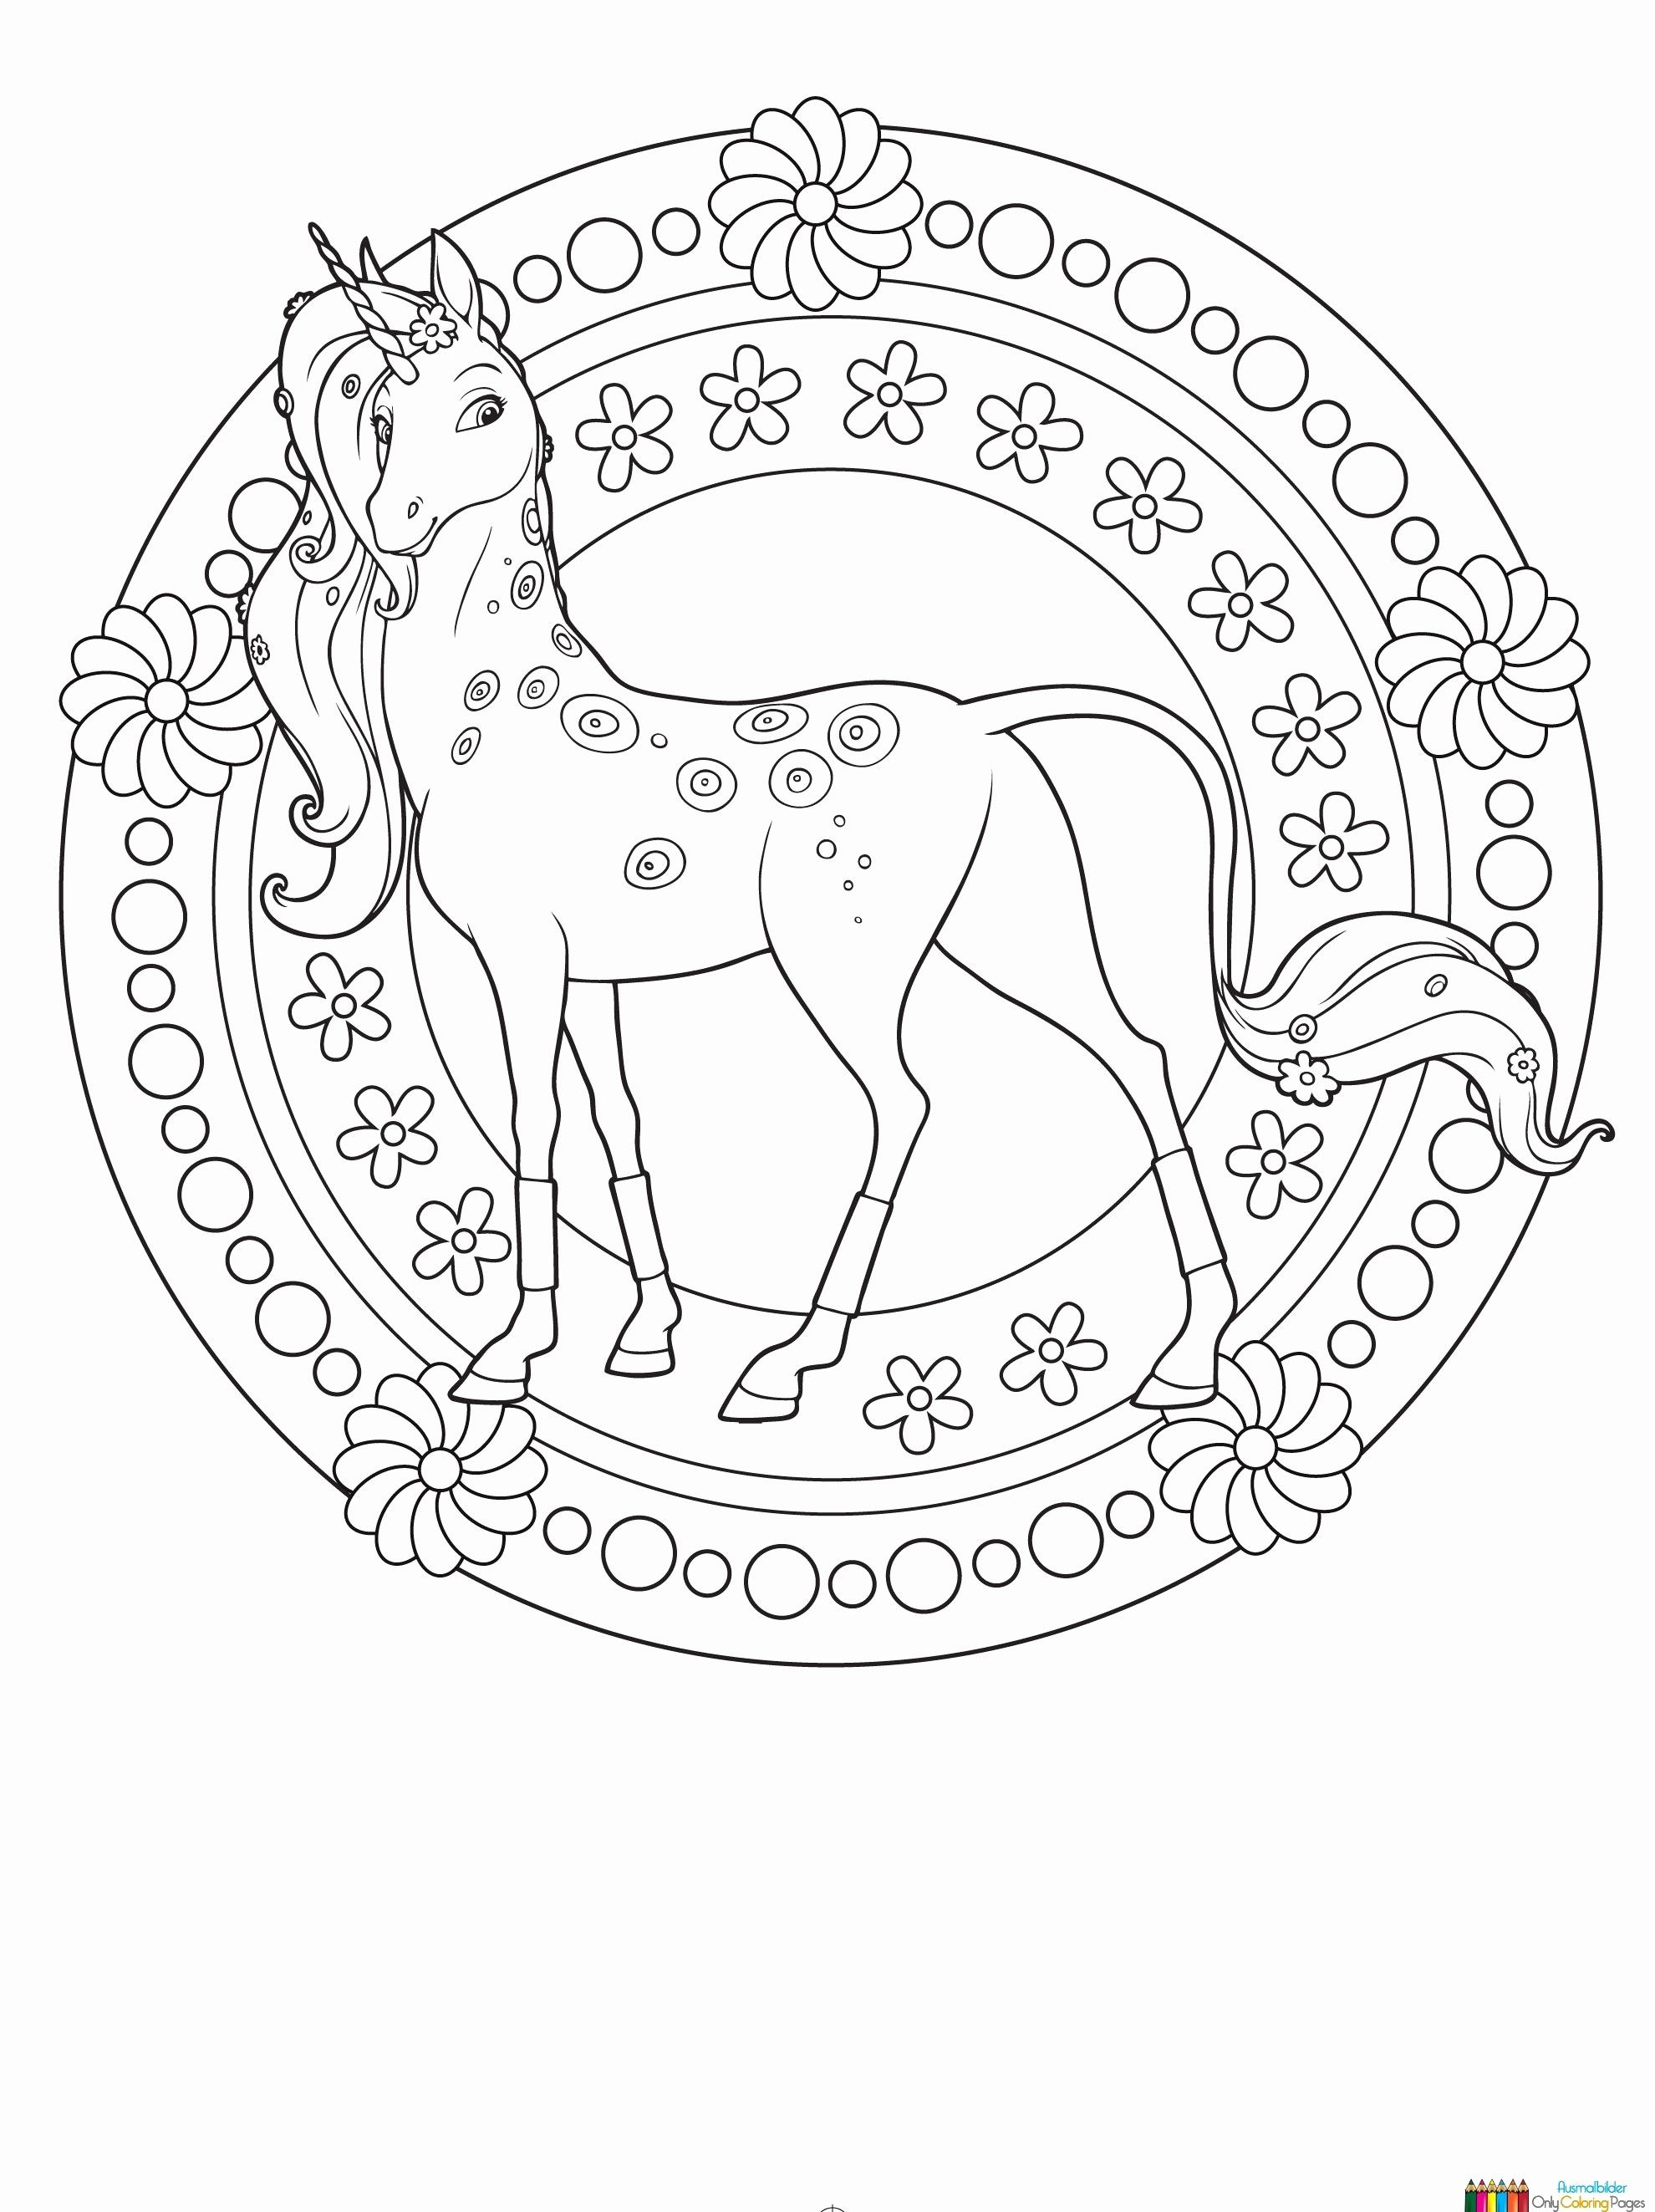 Cross Coloring Pages Pour Enfant Free Coloring Pages A House Awesome Cross Color Pages Unicorn Coloring Pages Horse Coloring Books Animal Coloring Pages